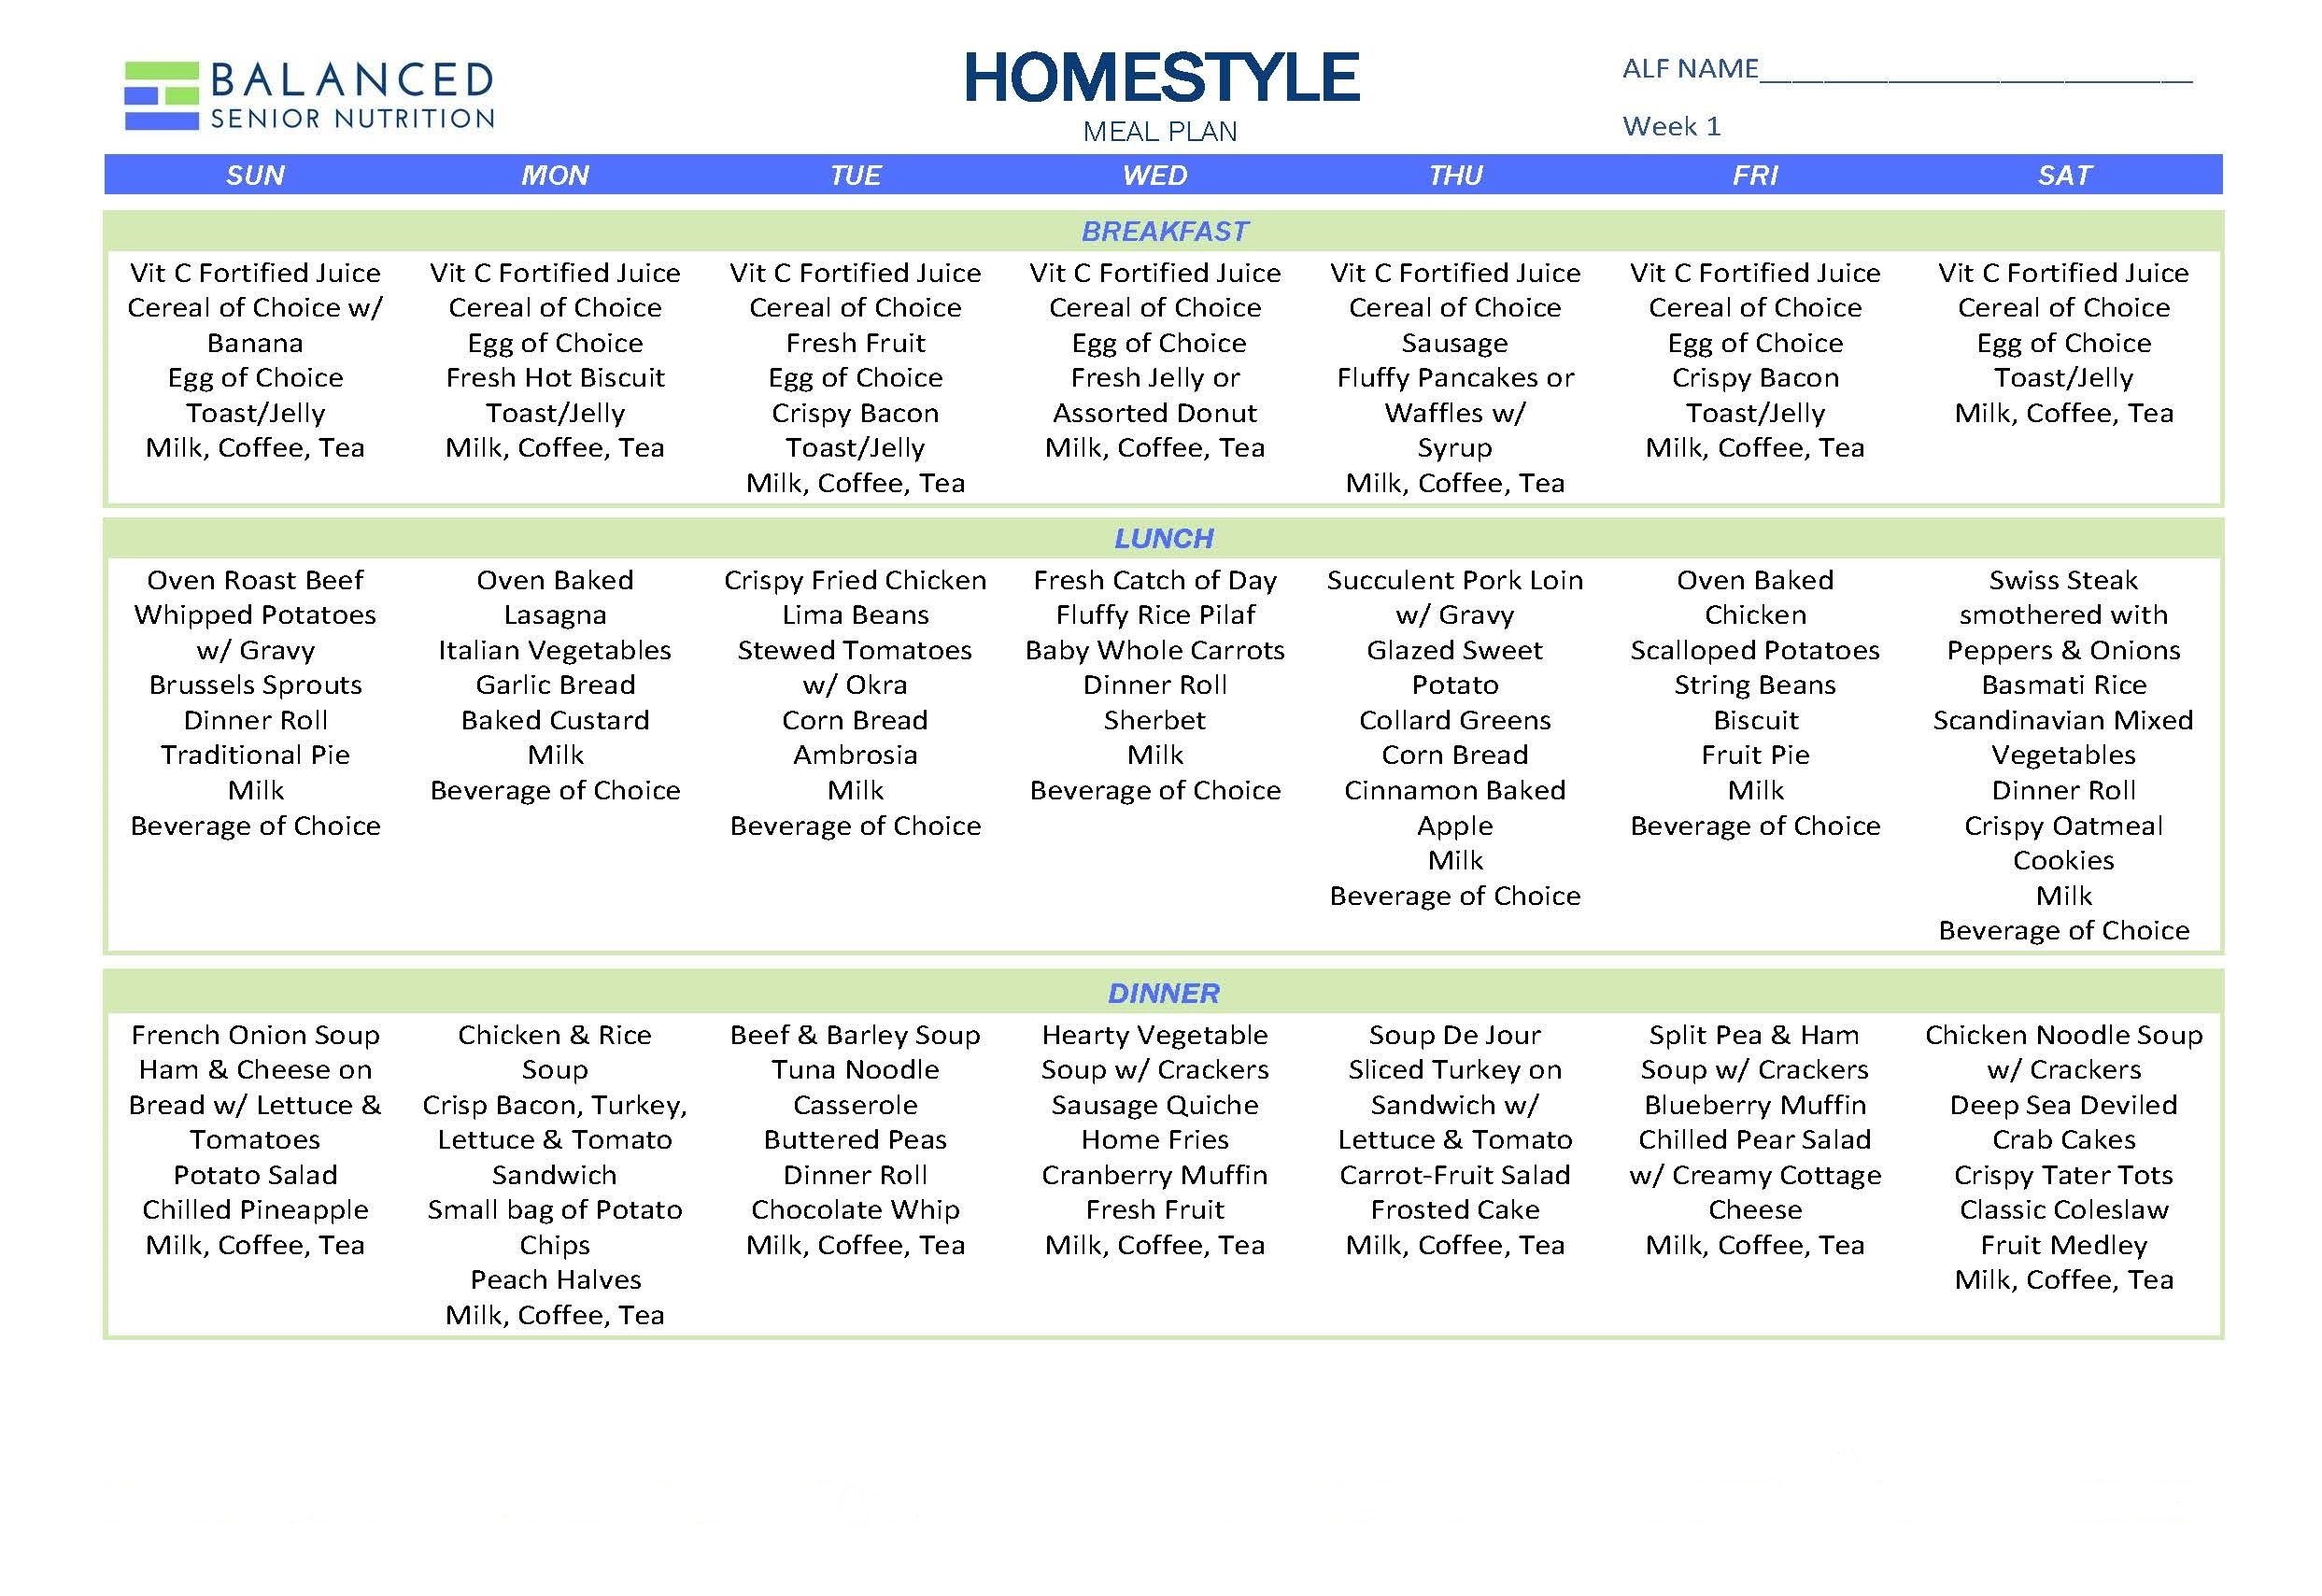 Home Style Meal Plan